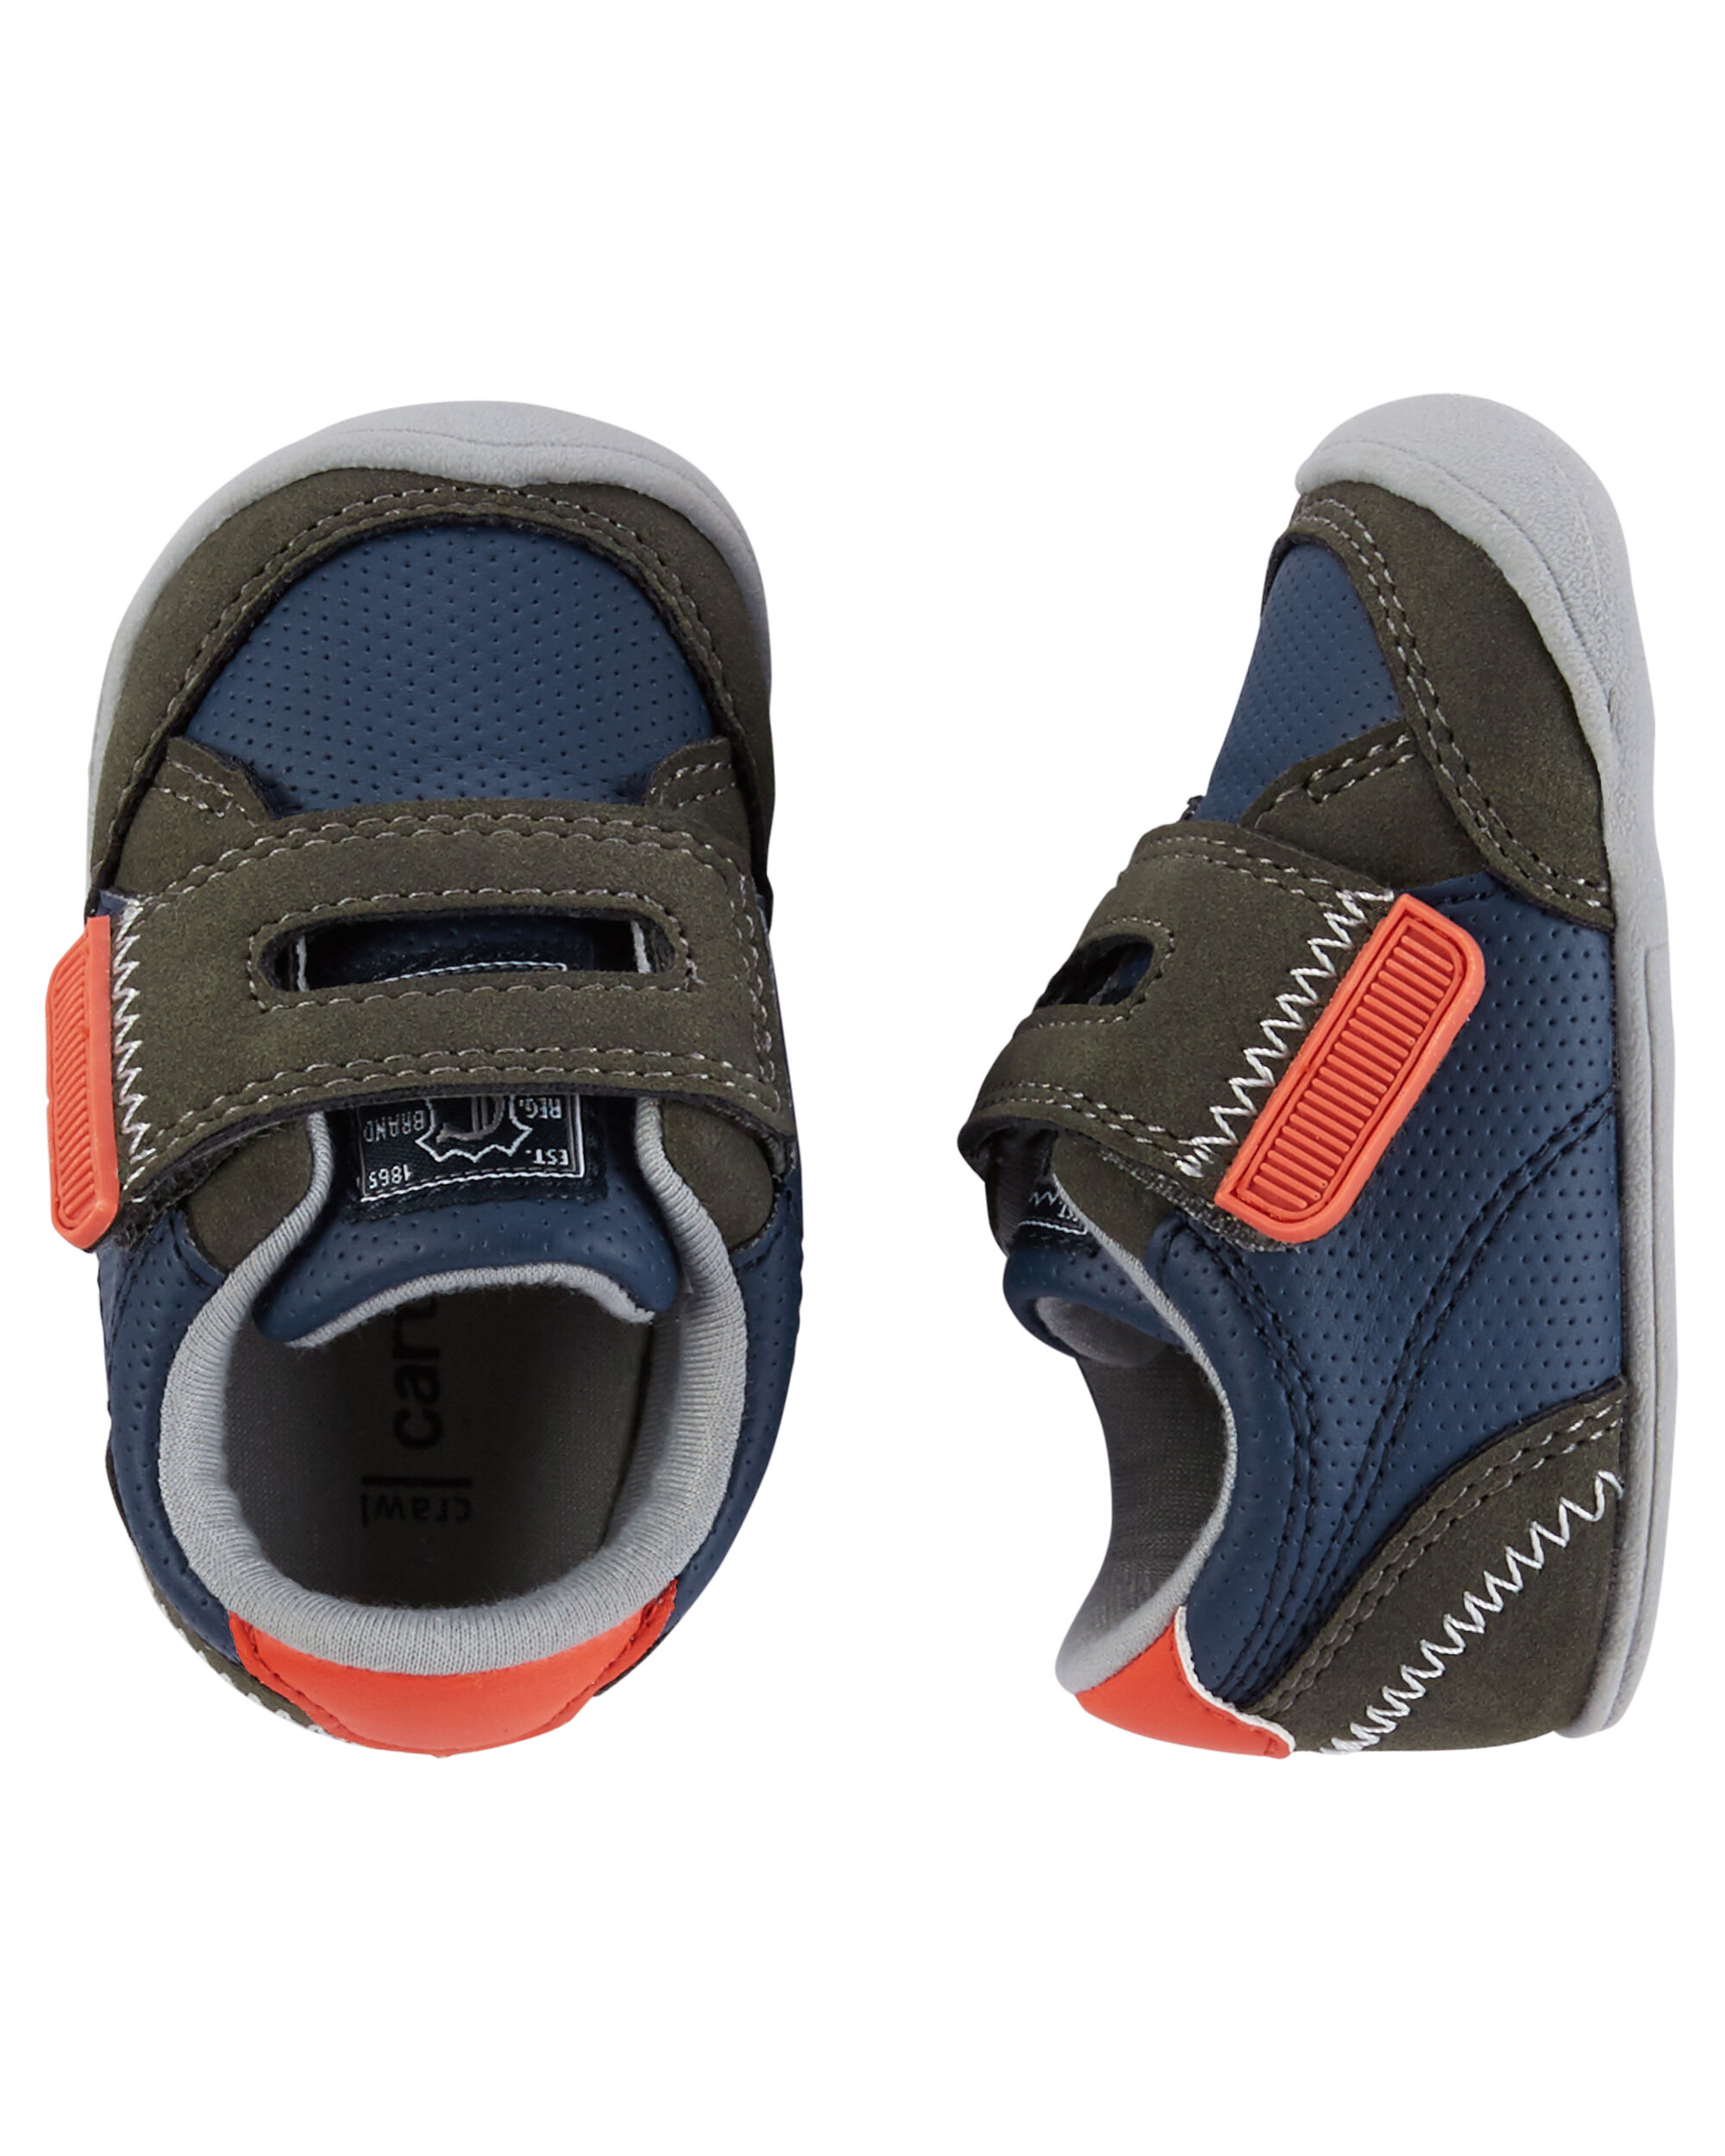 Carter's Every Step Stage 1 Shoe